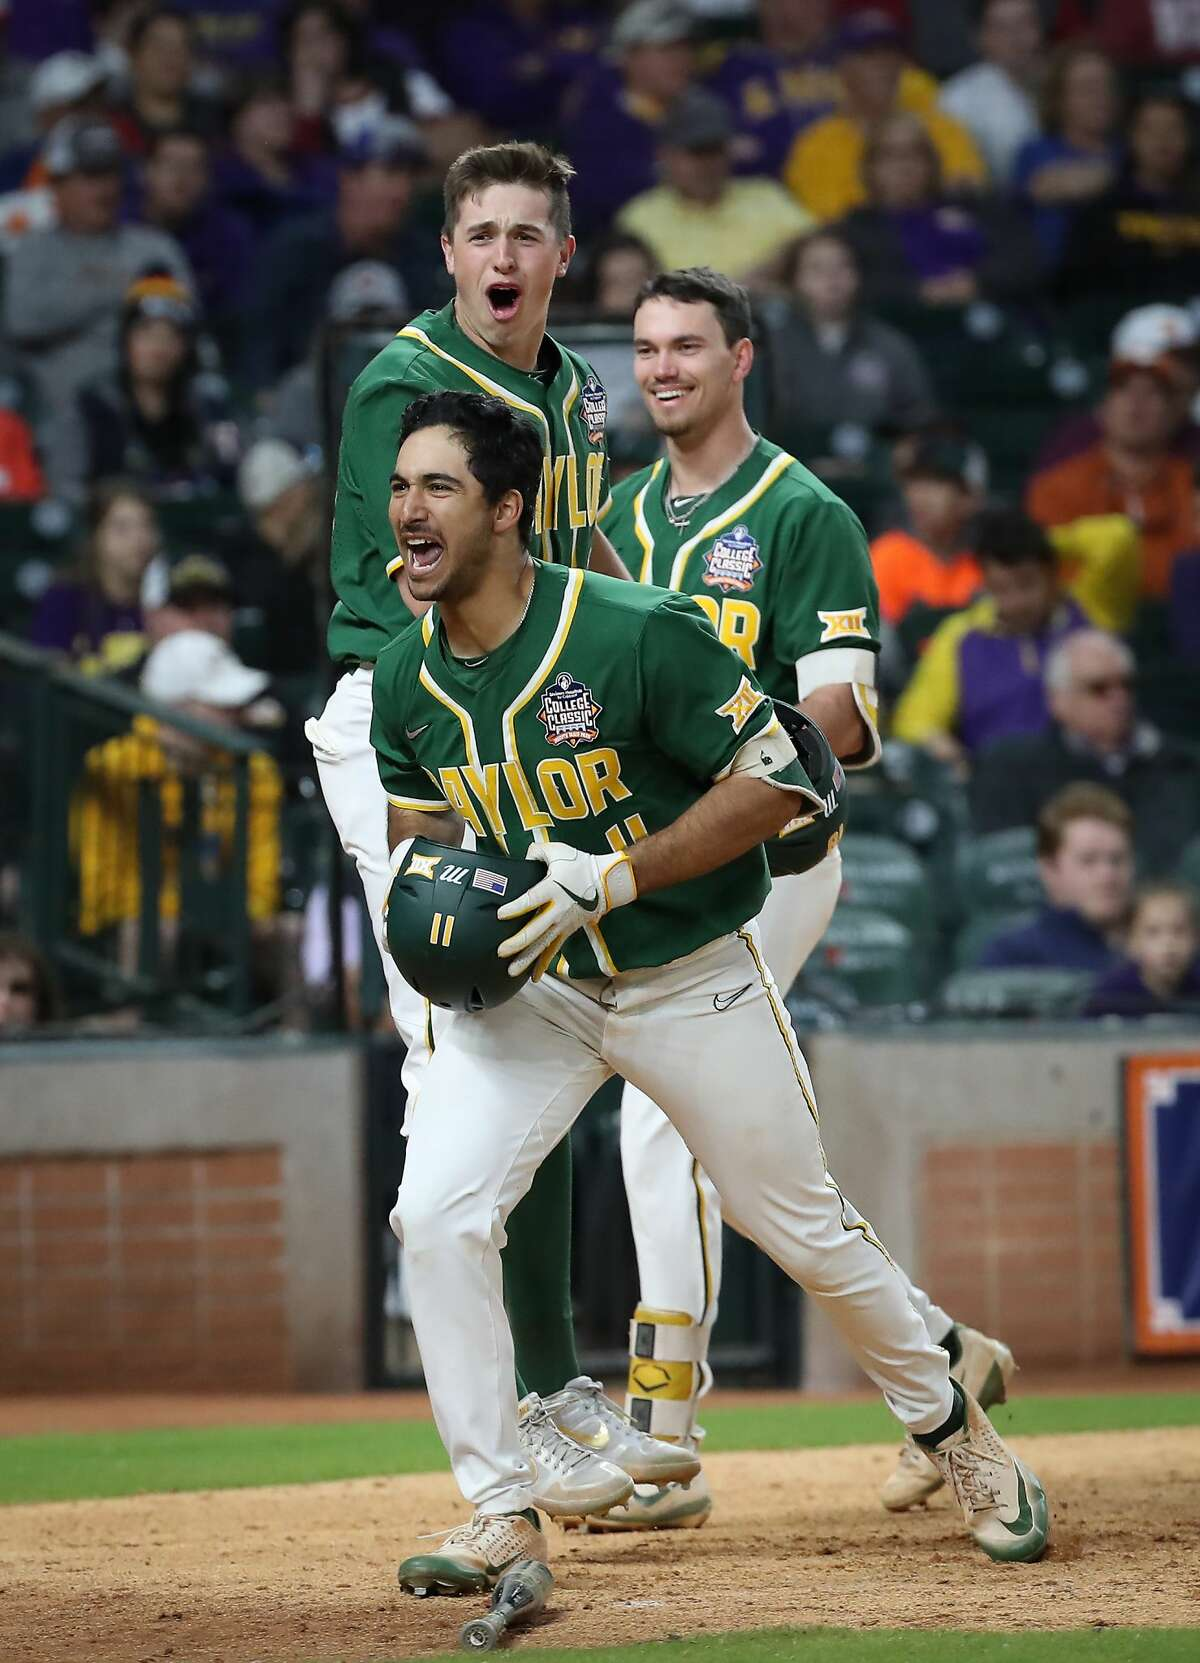 Baylor's Ricky Martinez celebrates after hitting a two-run homer during the 7th inning of the Shriners Hospitals for Children College Classic at Minute Maid Park Saturday, Feb. 29, 2020, in Houston.